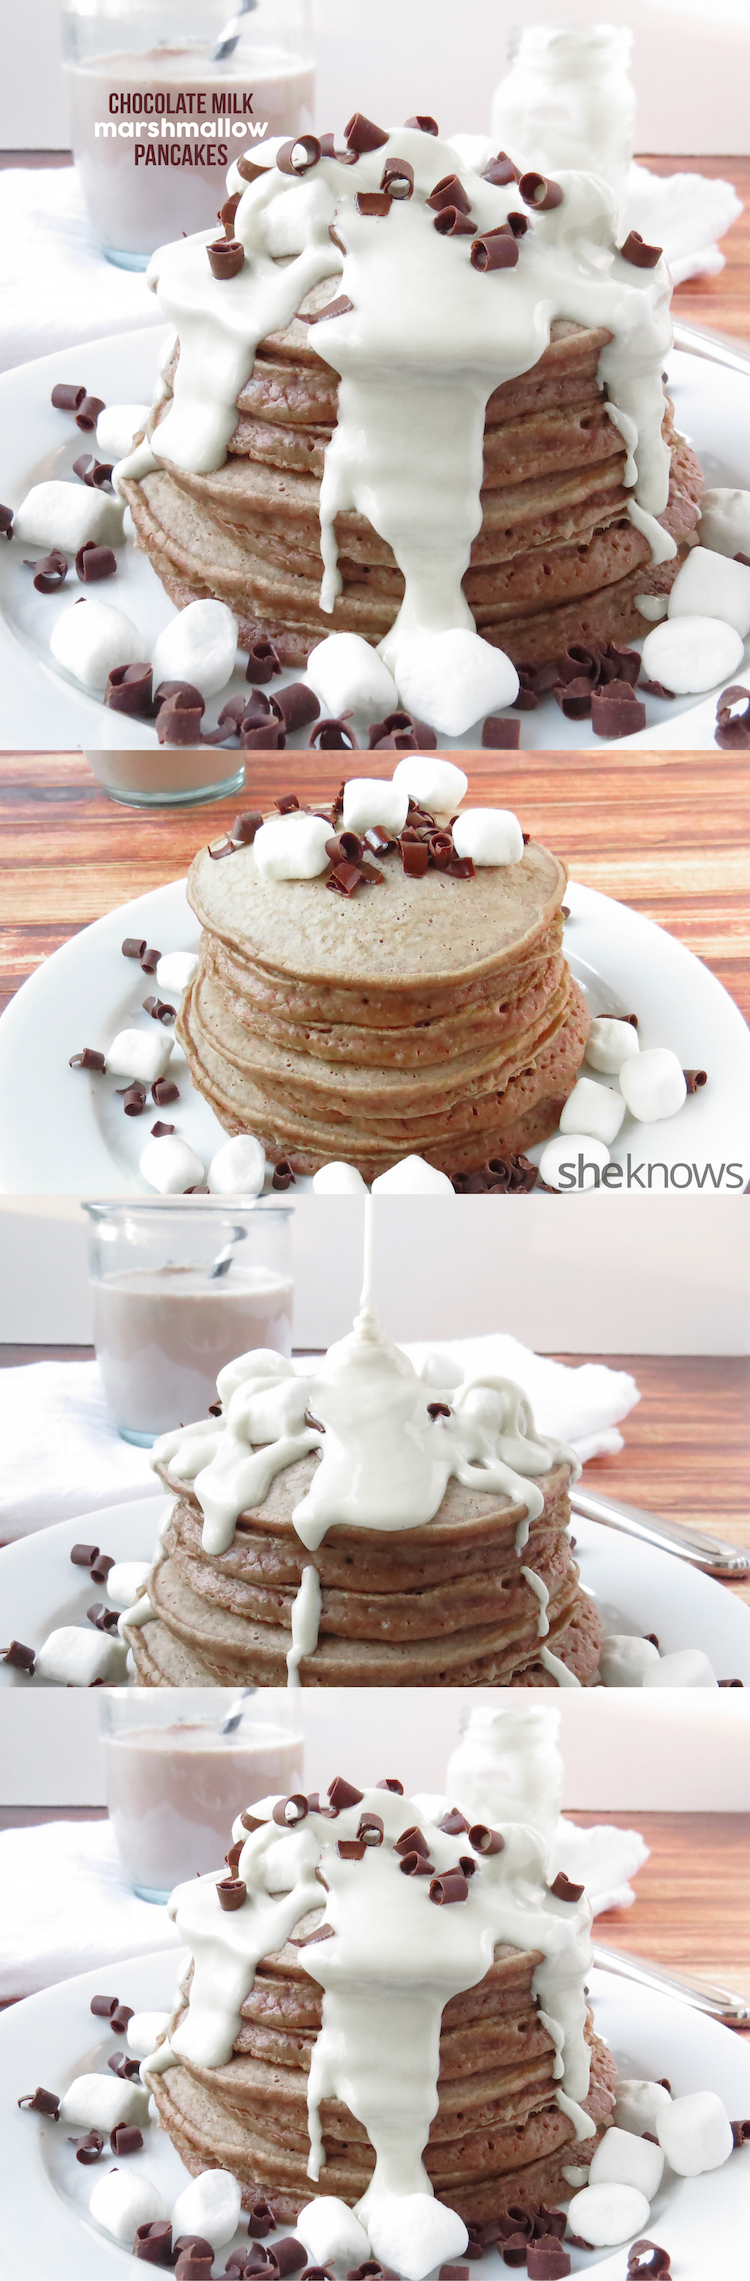 Chocolate Milk Marshmallow Pancakes